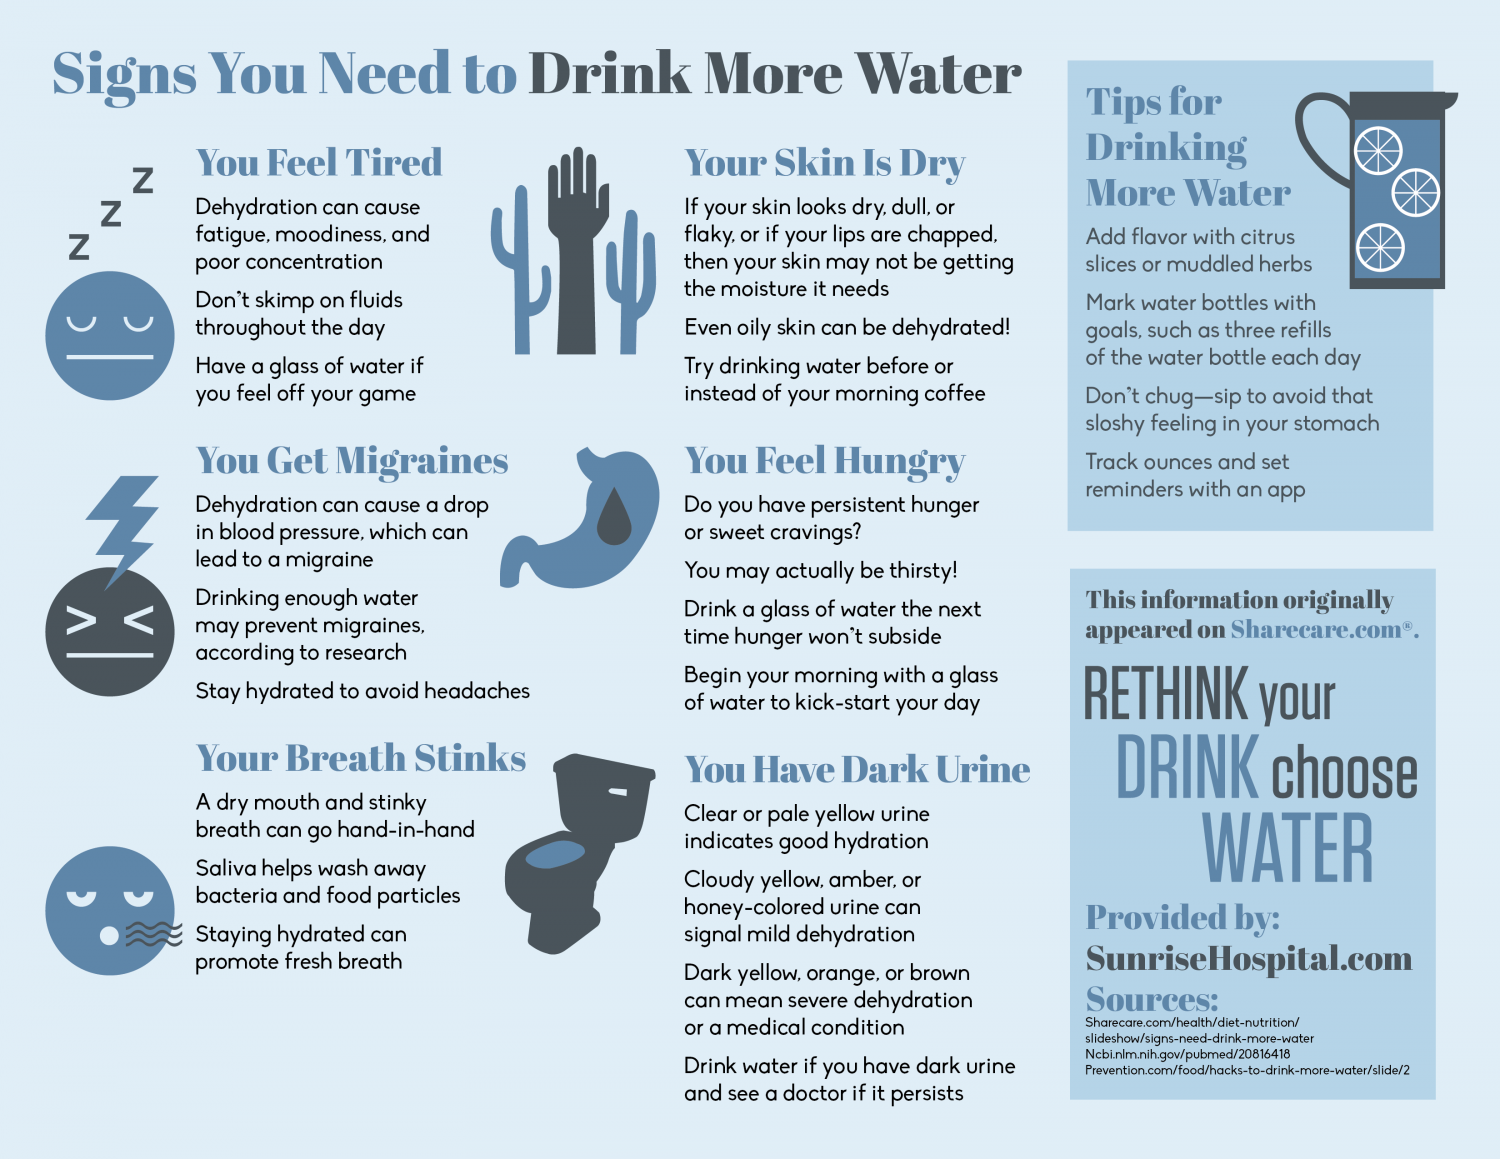 Signs You Need to Drink More Water Infographic